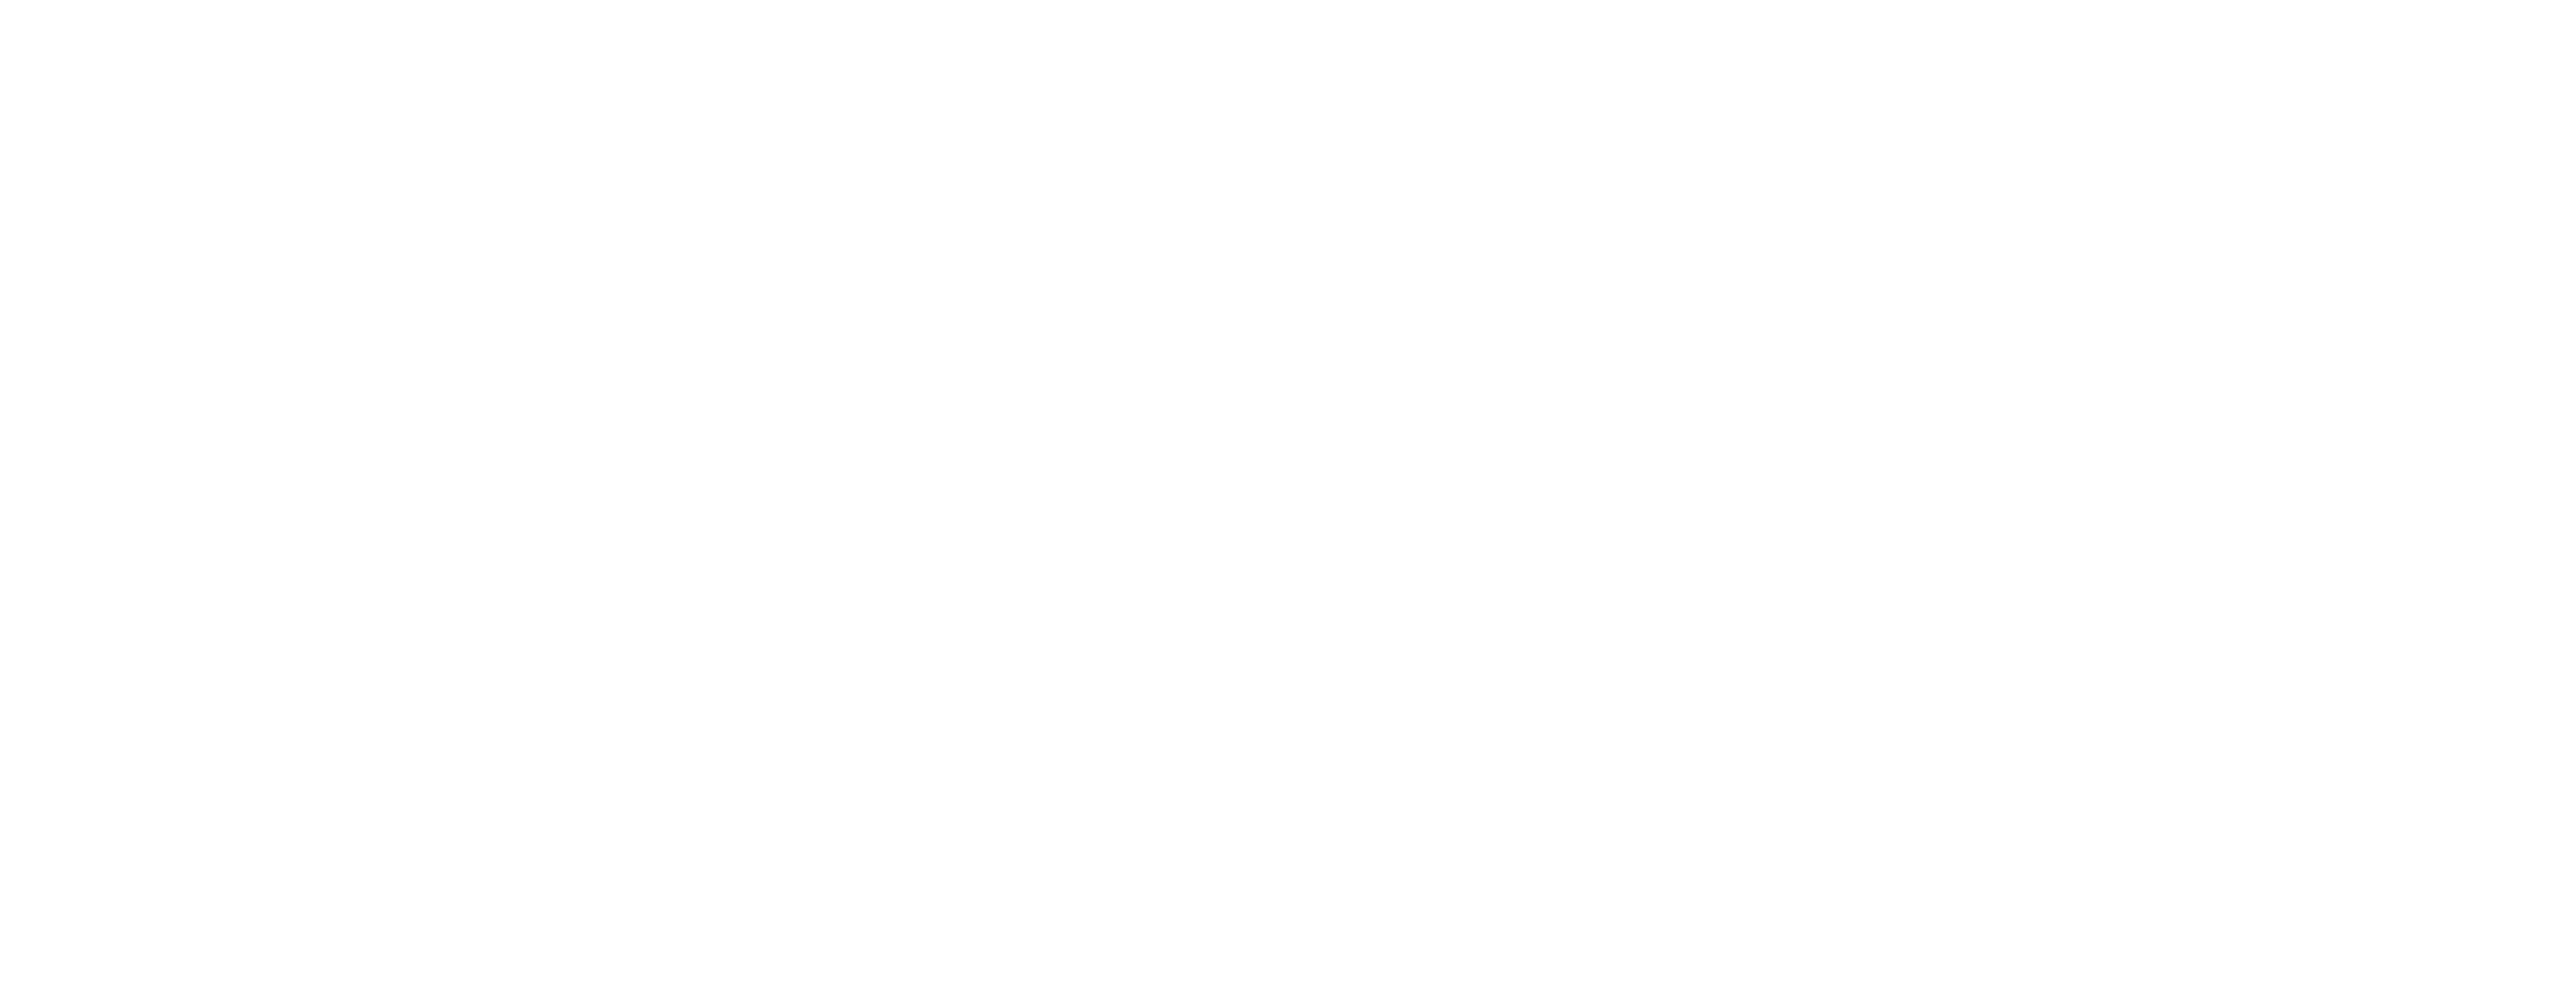 Firmdecisions Logo Website